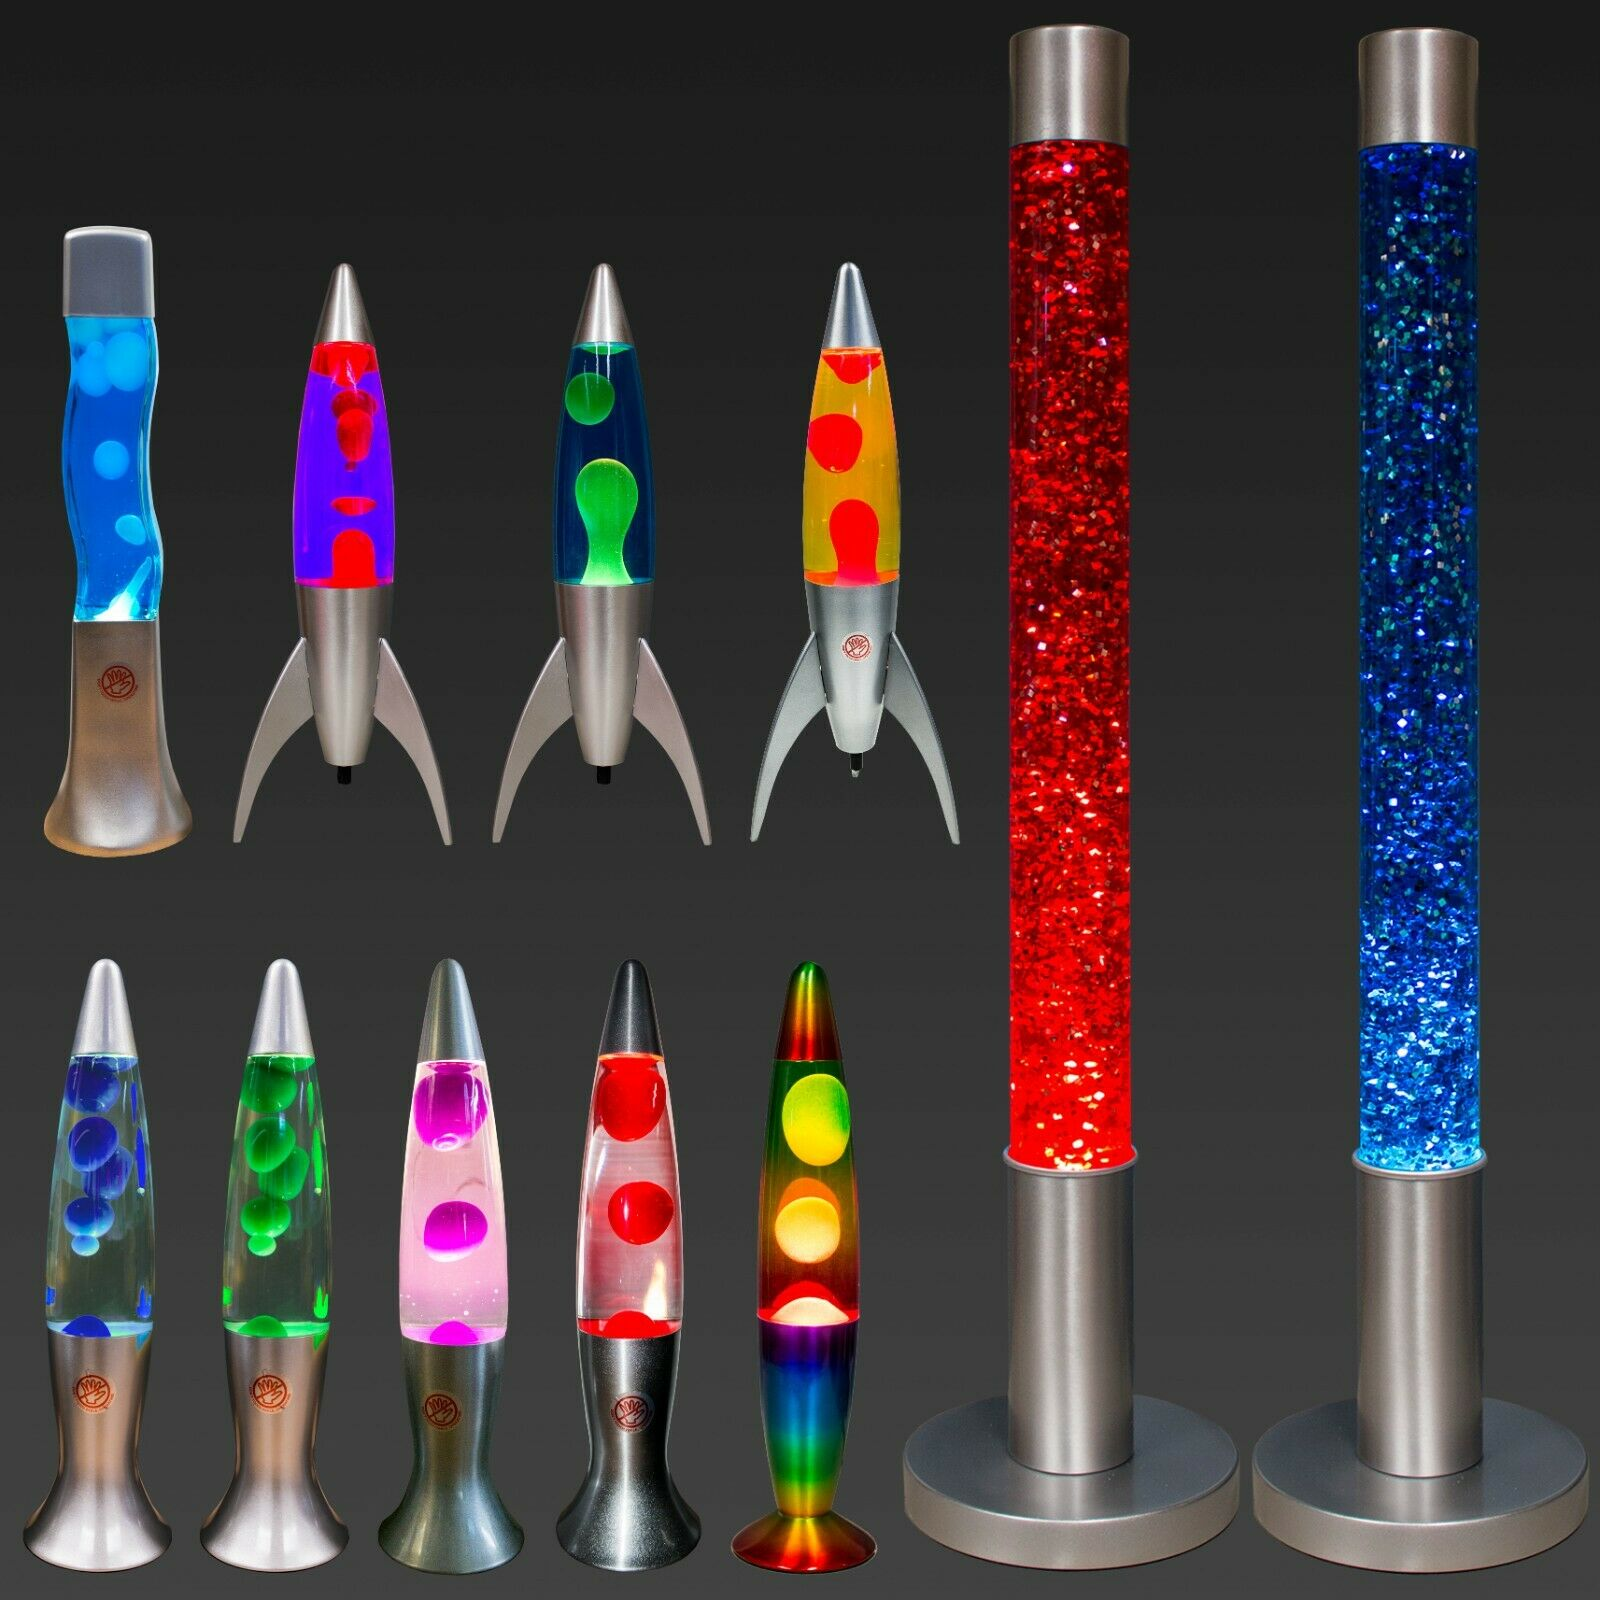 Lava Lamp Bedroom Home Liquid Soothing Relaxing Motion Wax